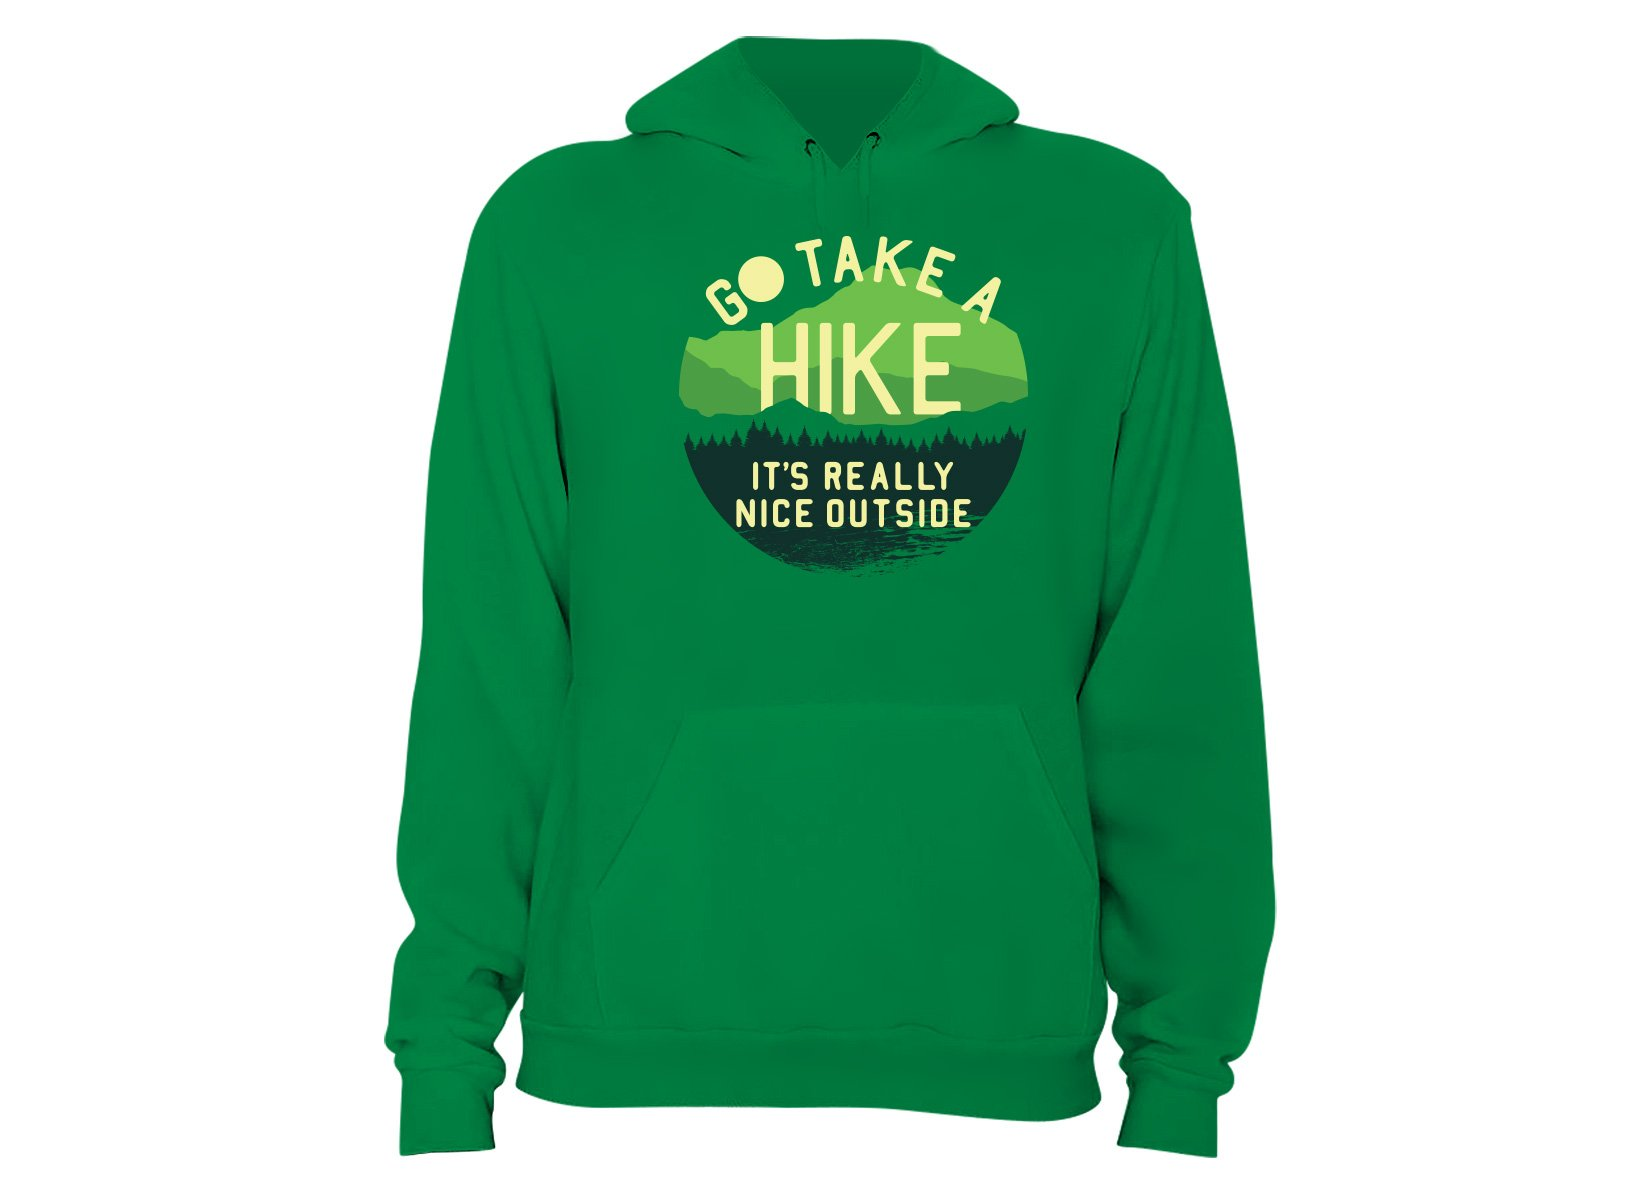 Go Take A Hike on Hoodie